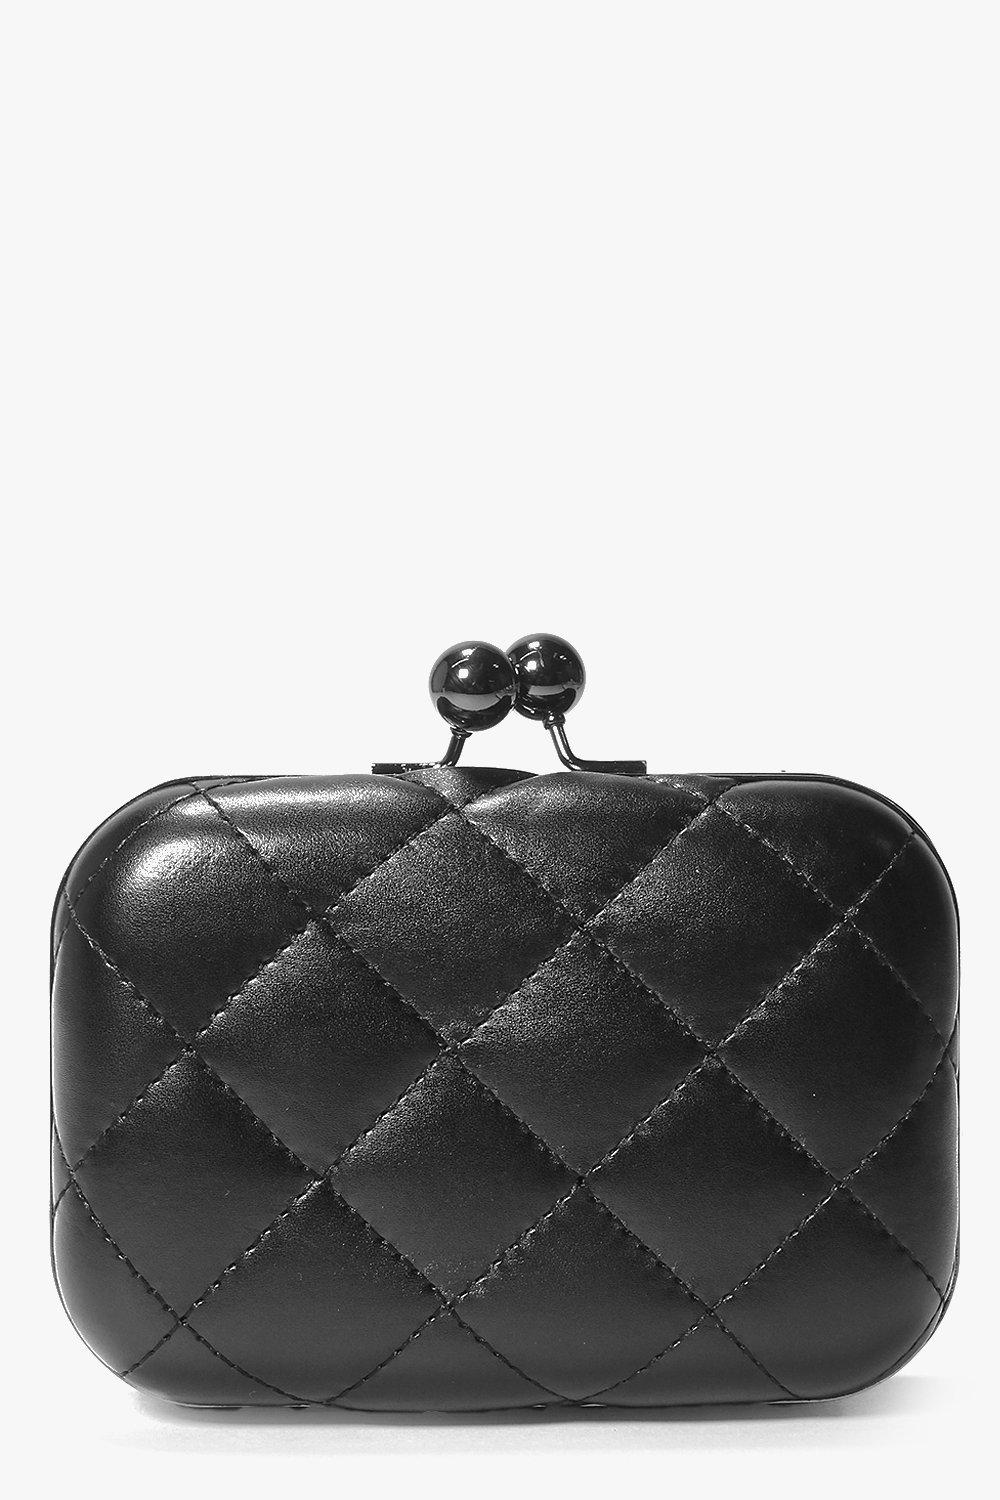 Quilted Box Clutch Bag black